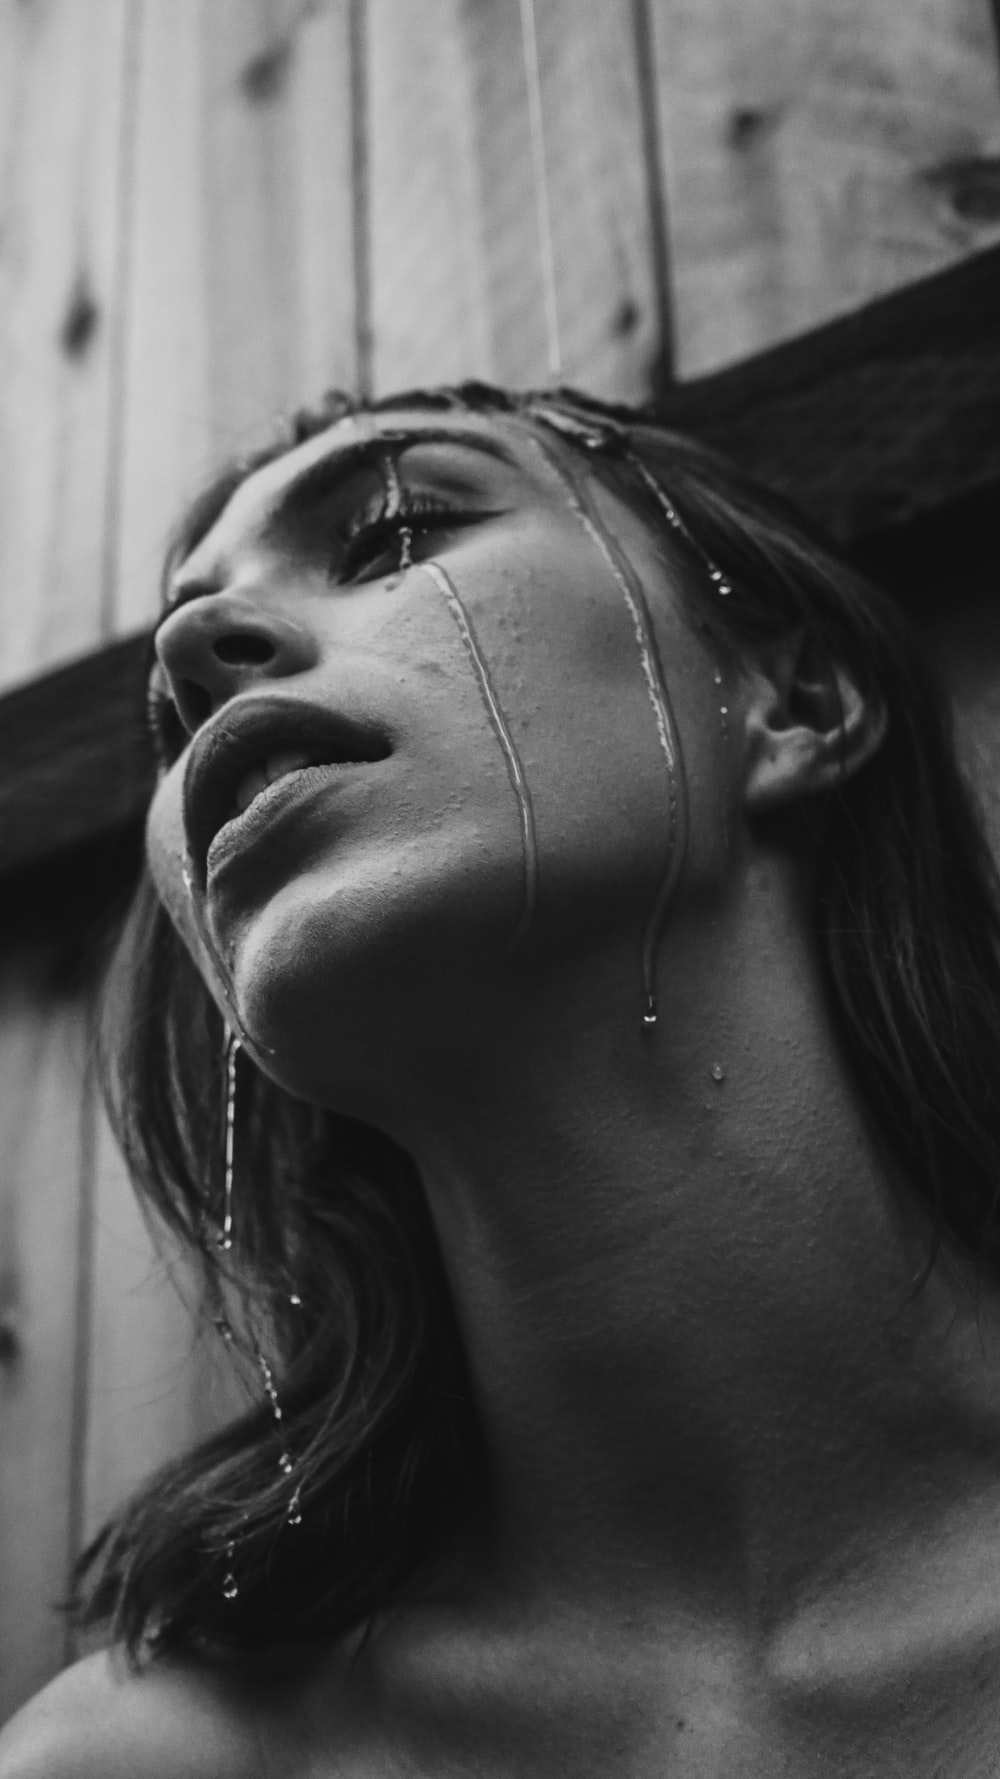 grayscale photo of wet woman